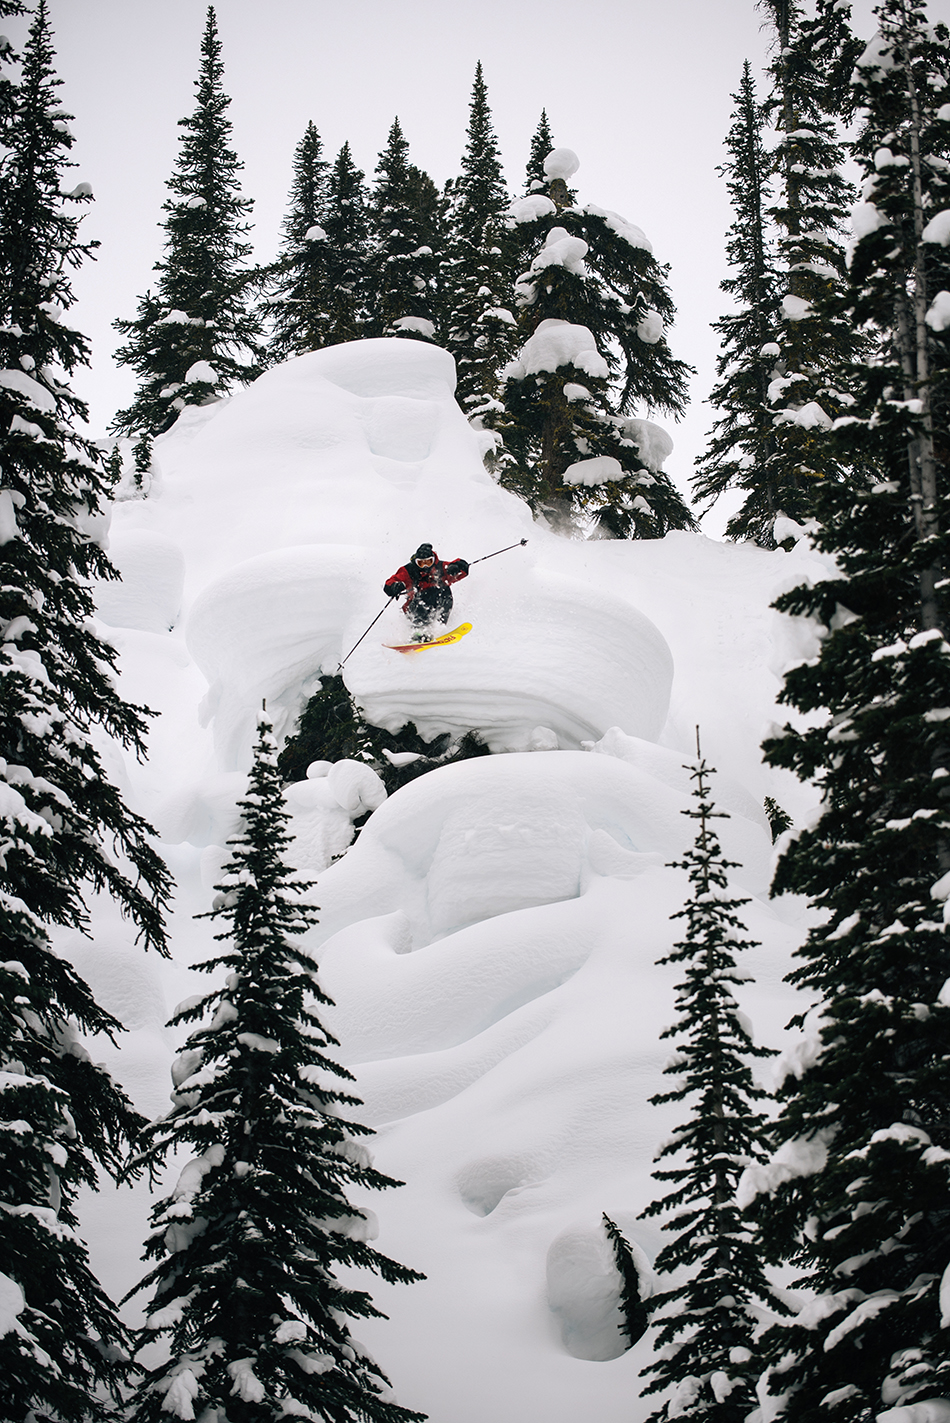 Duncan Adams is one of the best freeskiers on the planet, hands down. Photo: Max Lowe